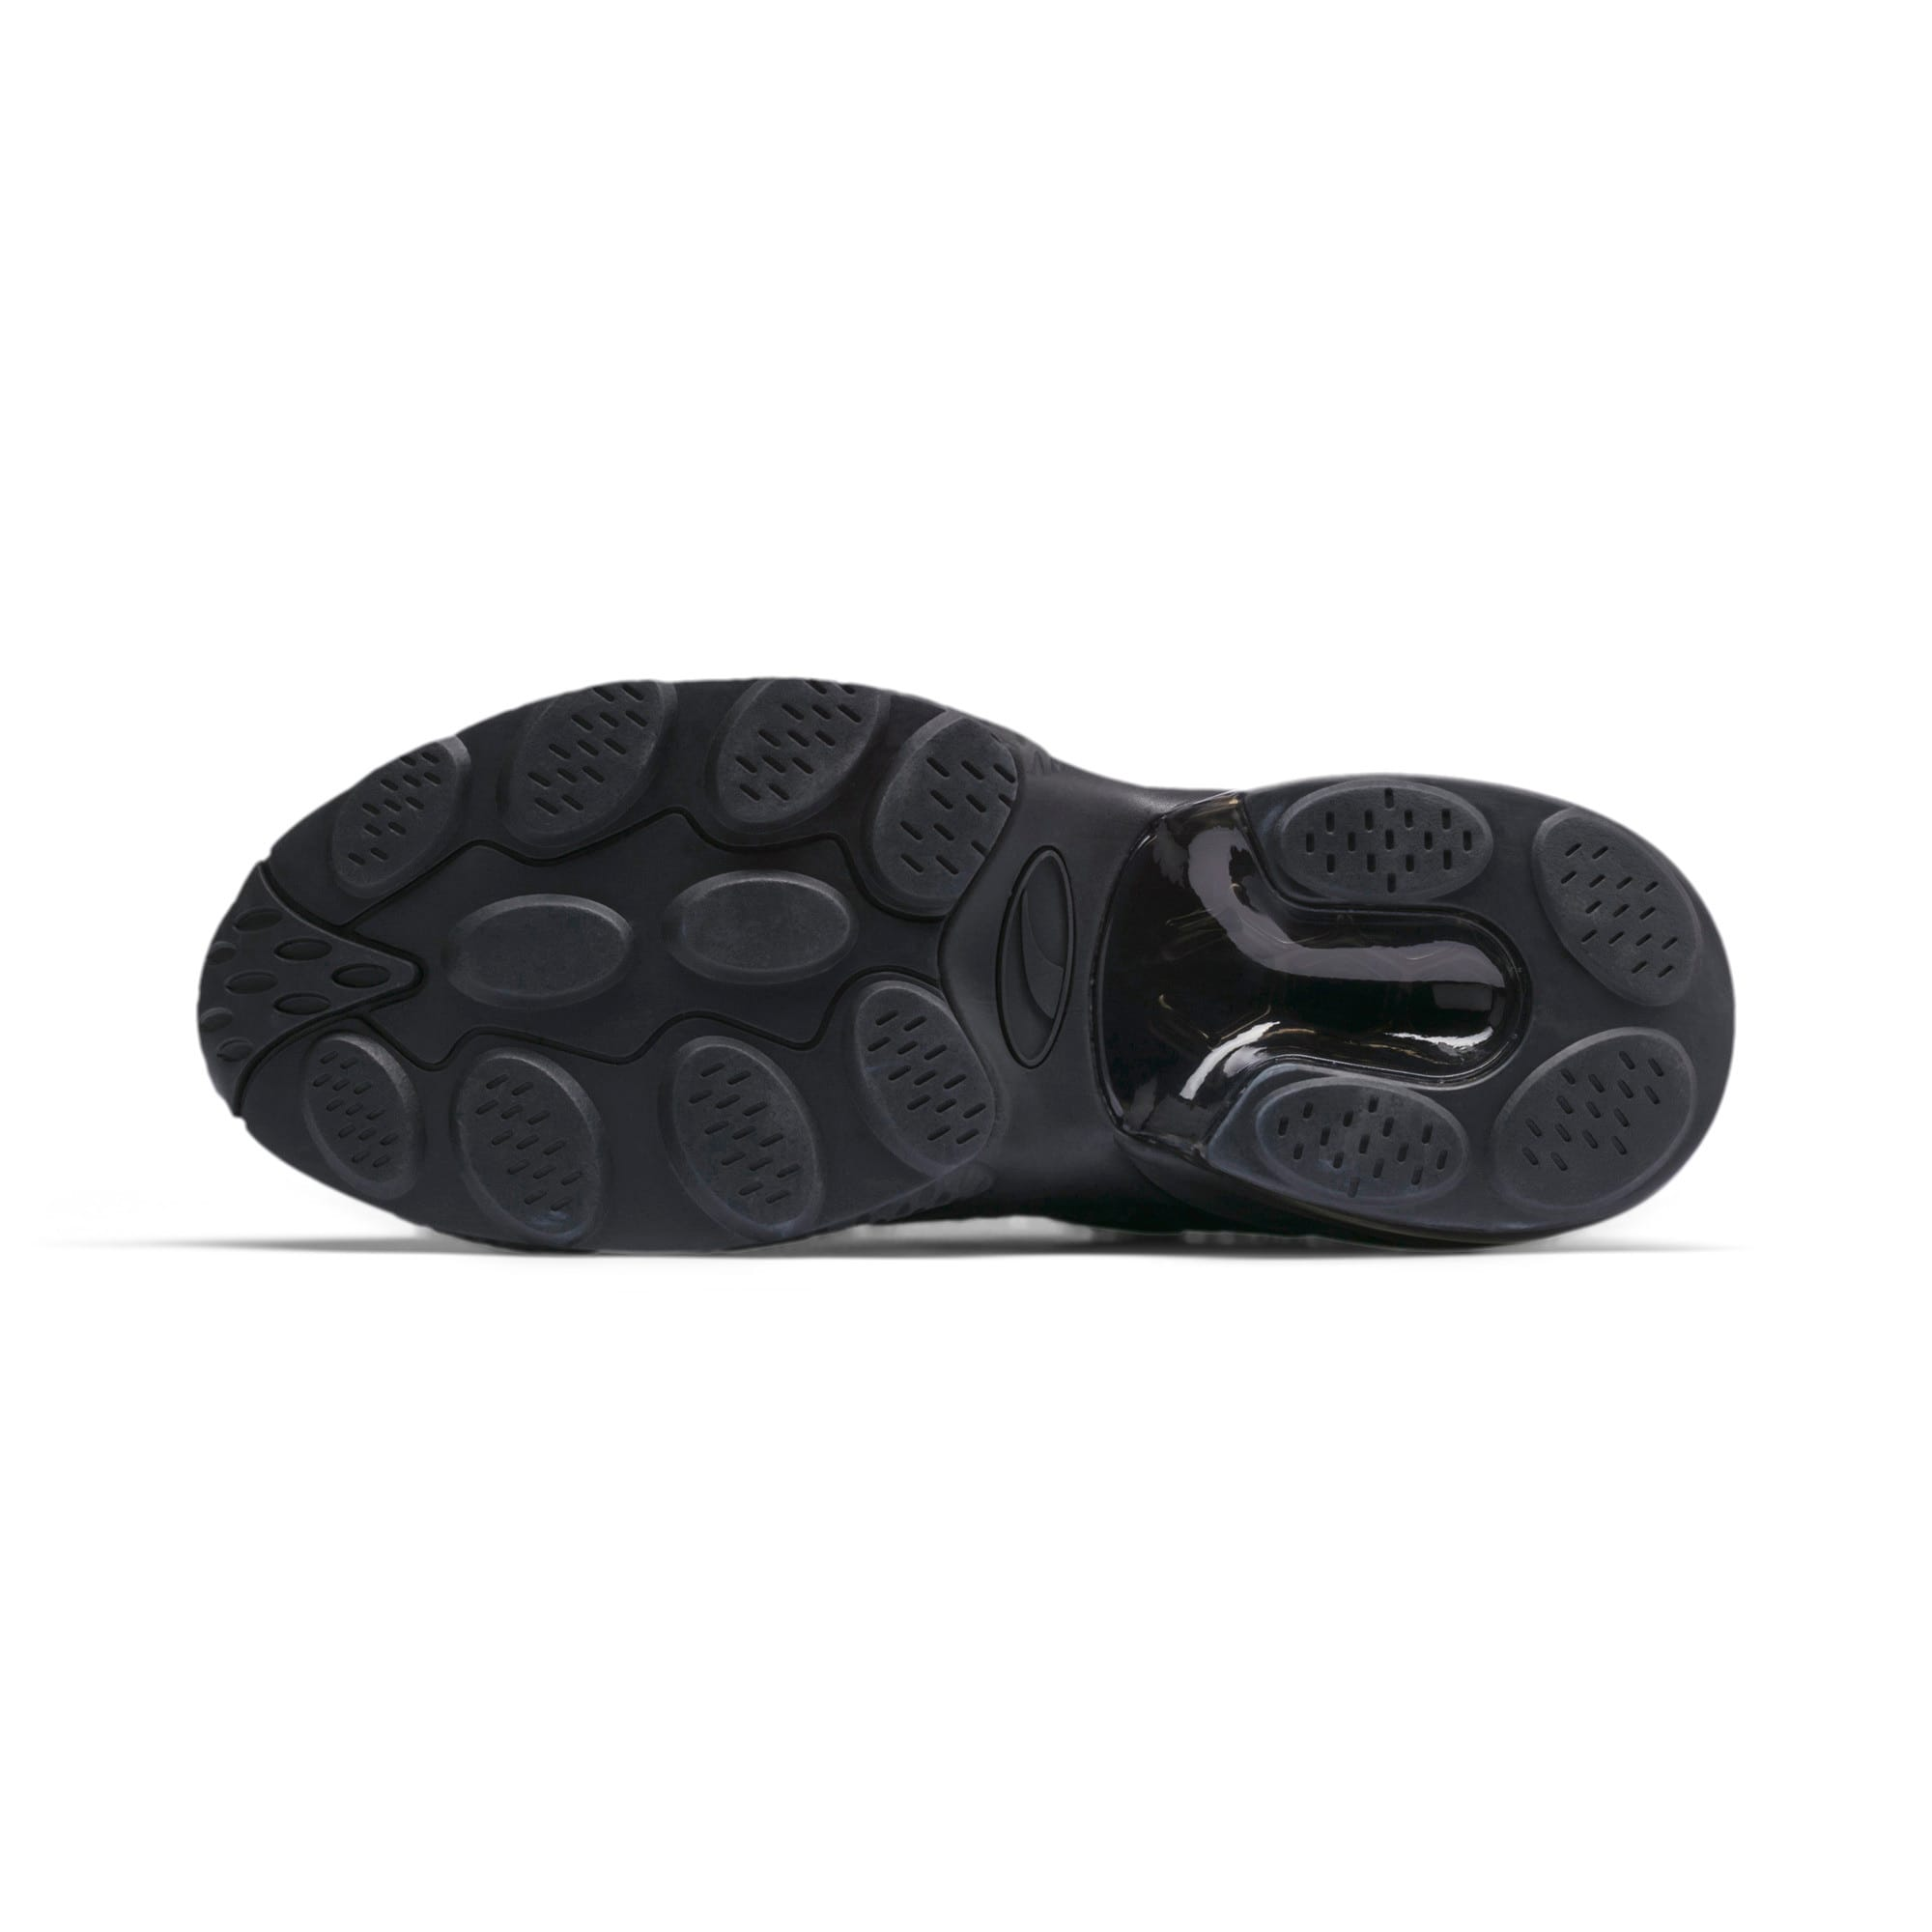 Thumbnail 4 of Scarpe da ginnastica CELL Venom Blackout, Puma Black-Puma Black, medium